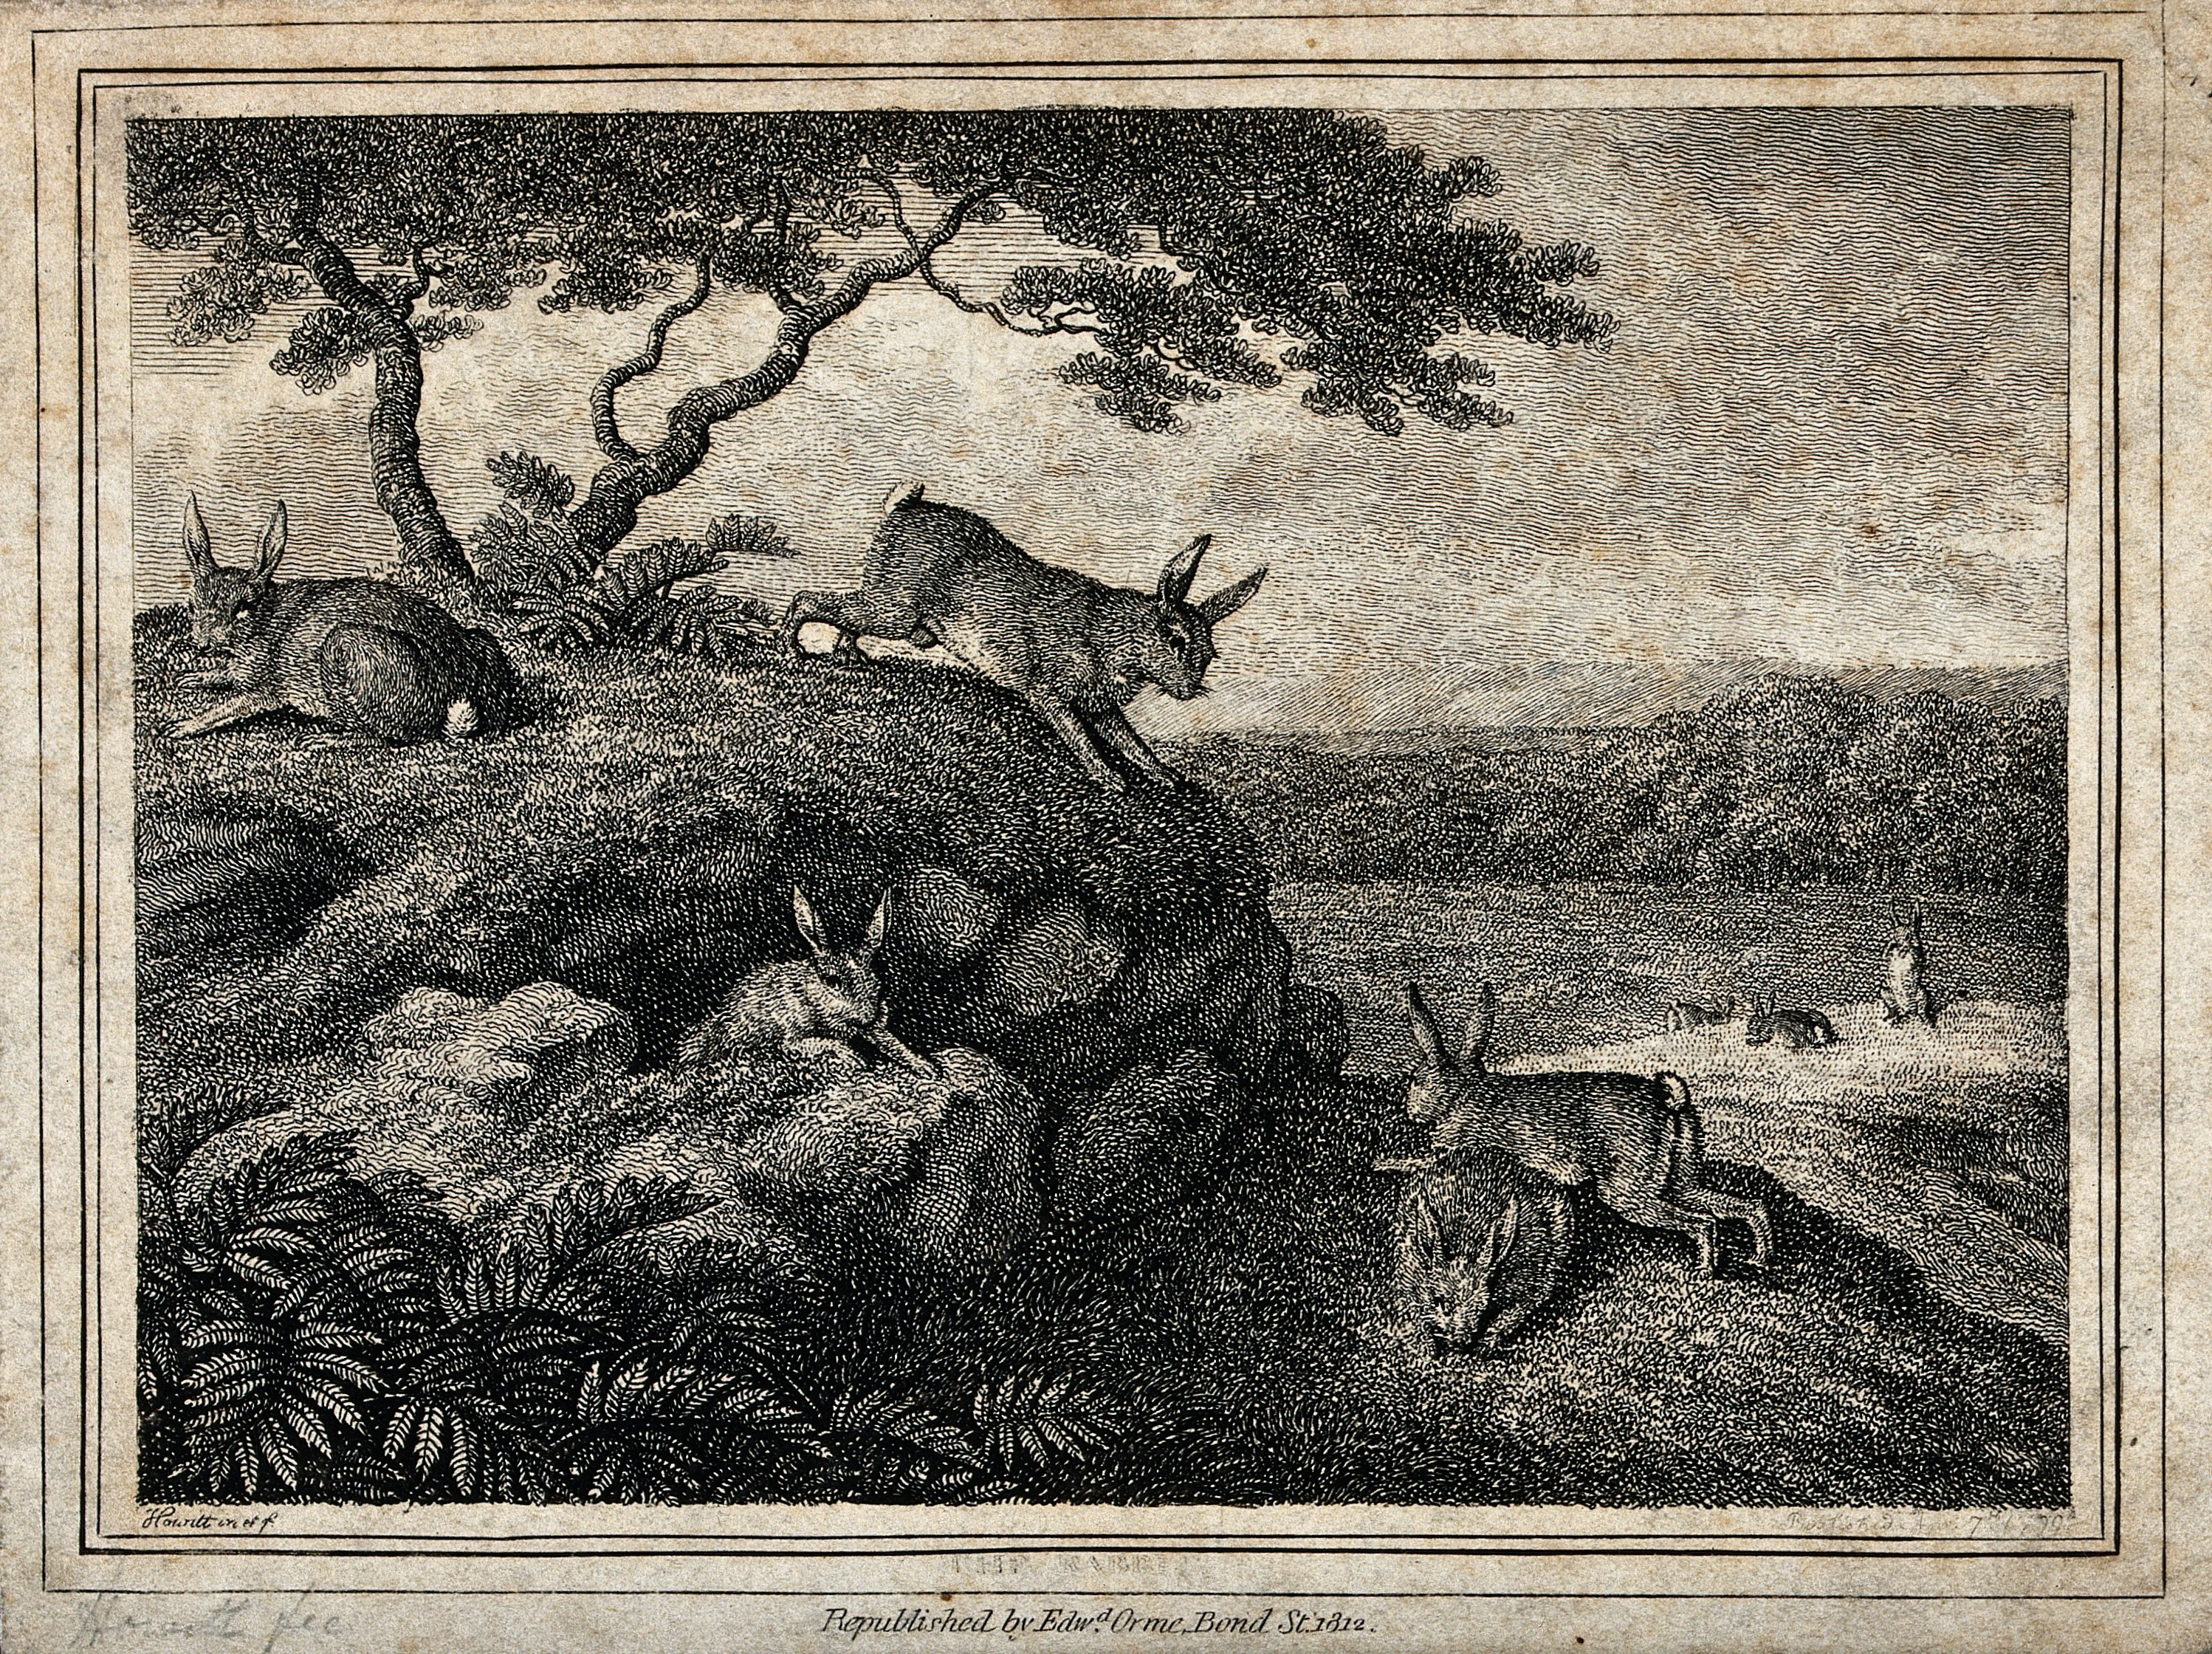 Rabbits playing and eating outside their burrow. Etching by W-S Howitt, ca 1798.